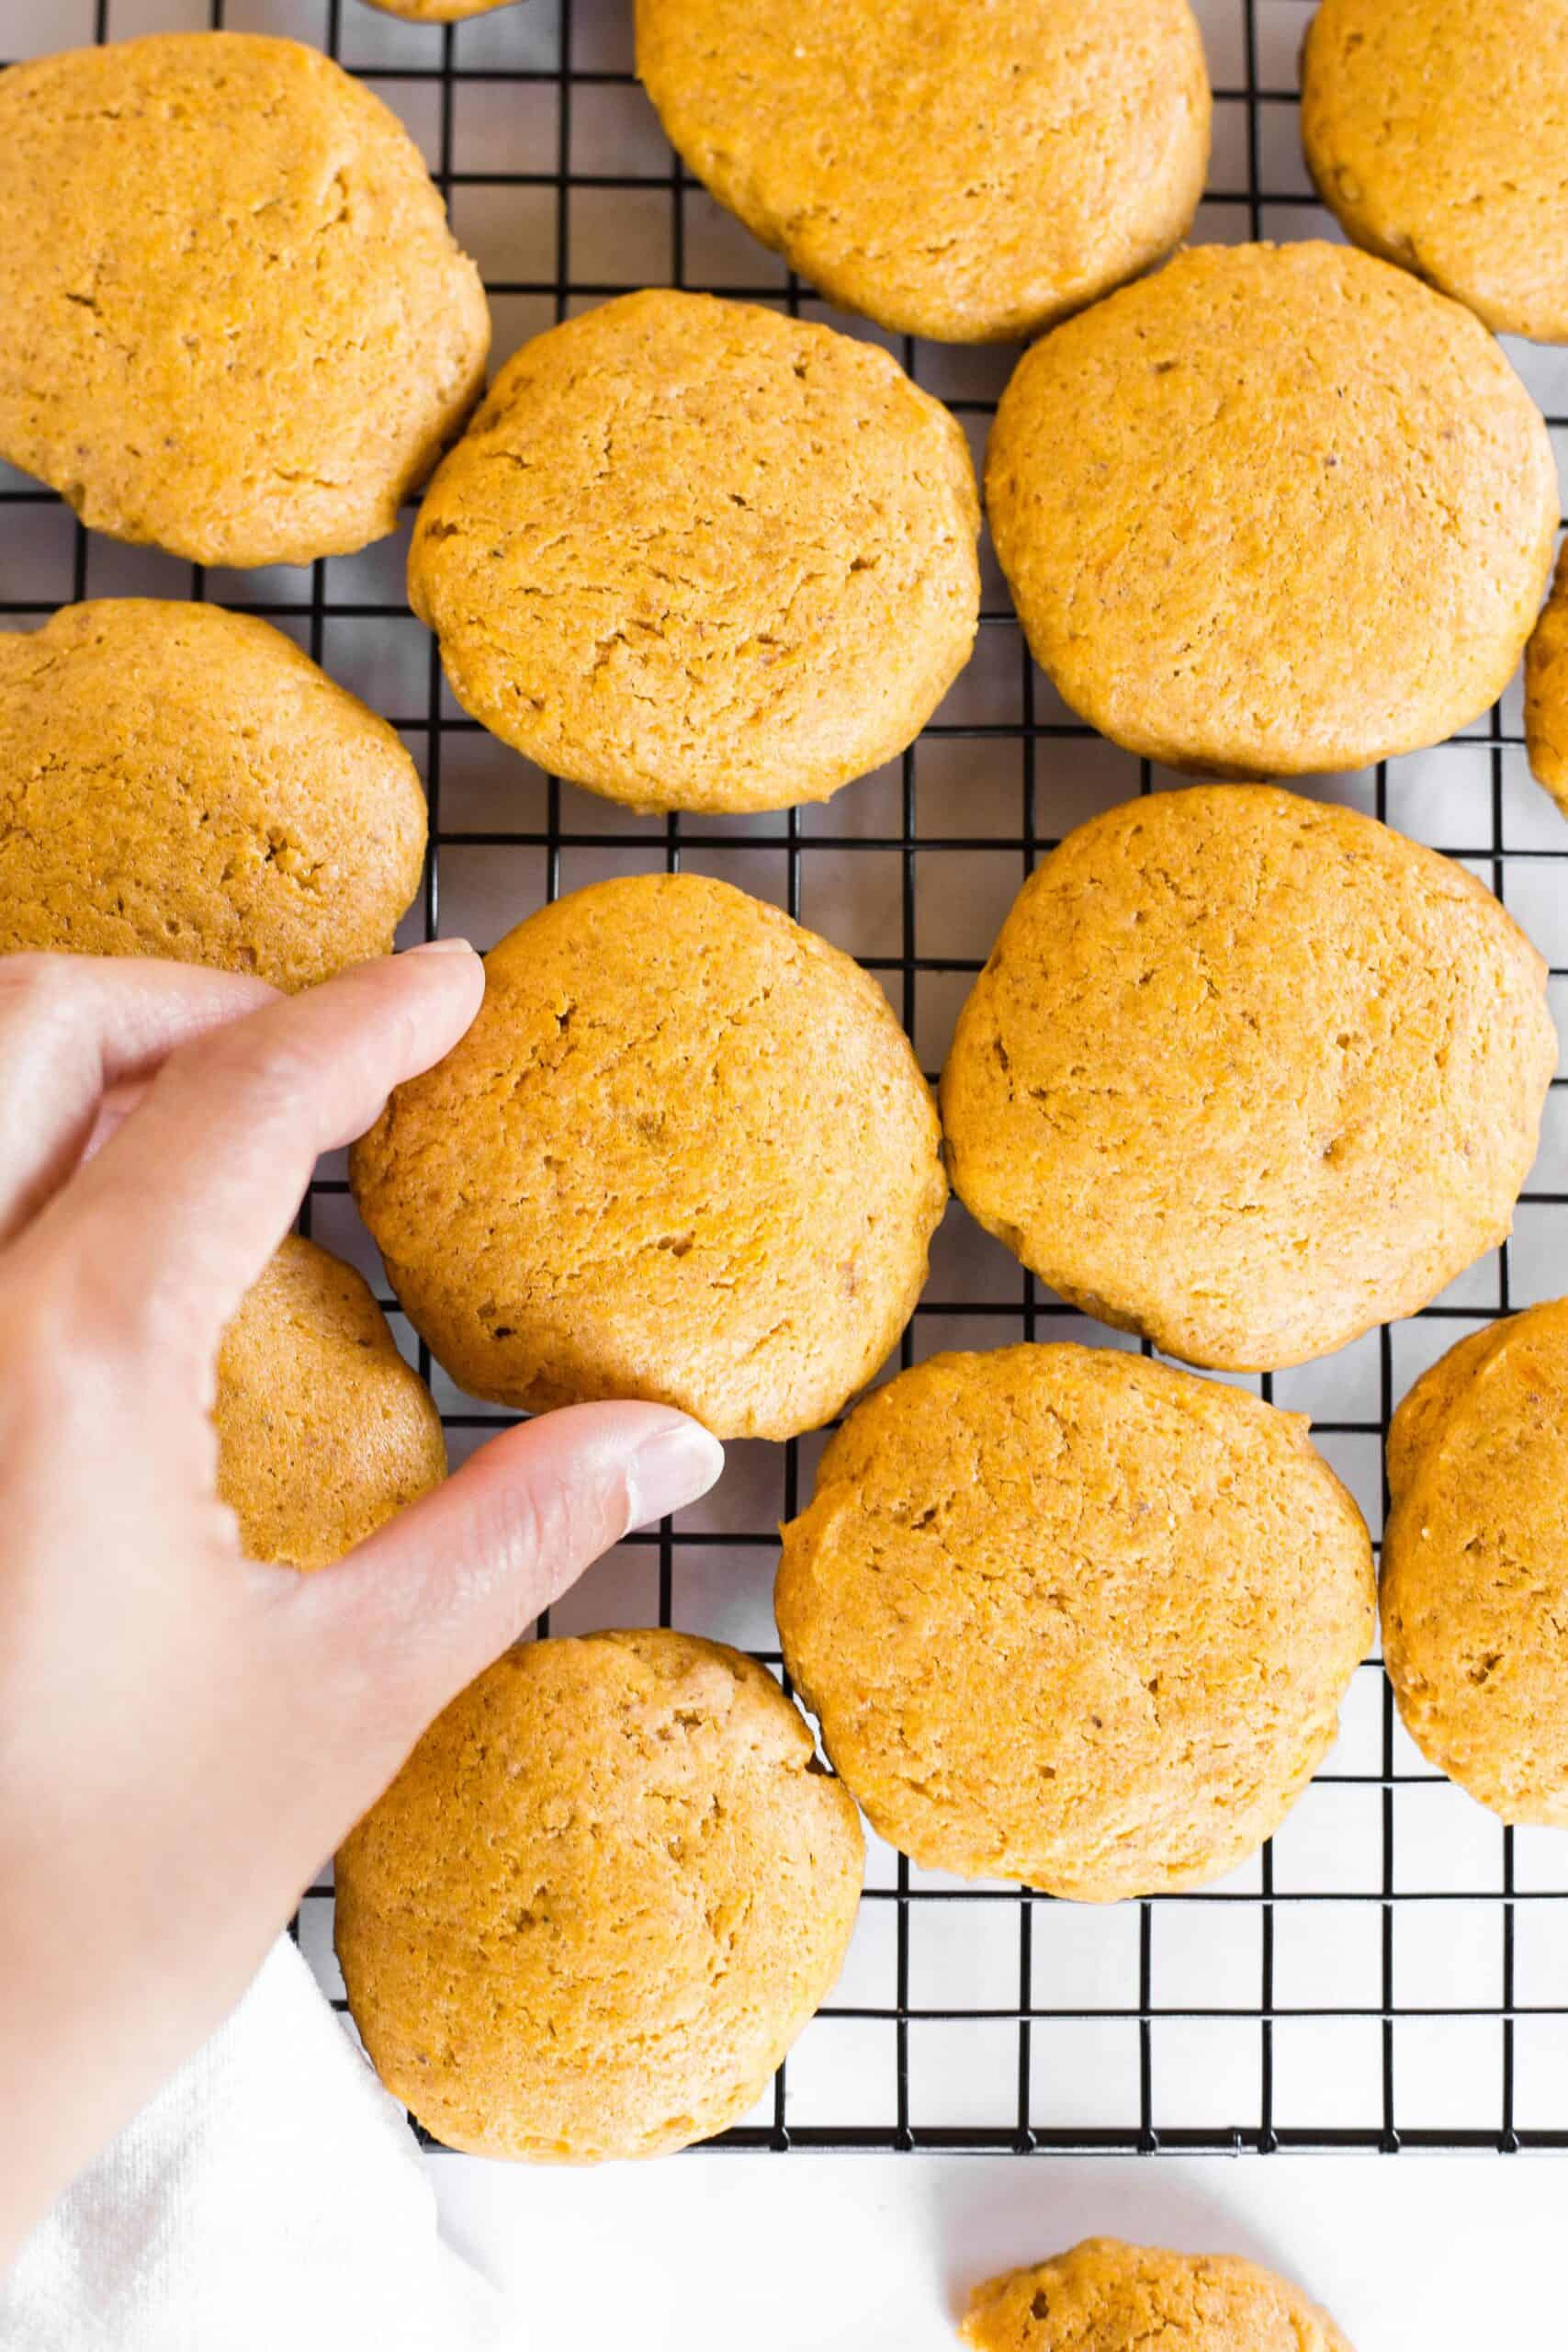 Hand reaching for gluten-free pumpkin cookies on a wire rack.